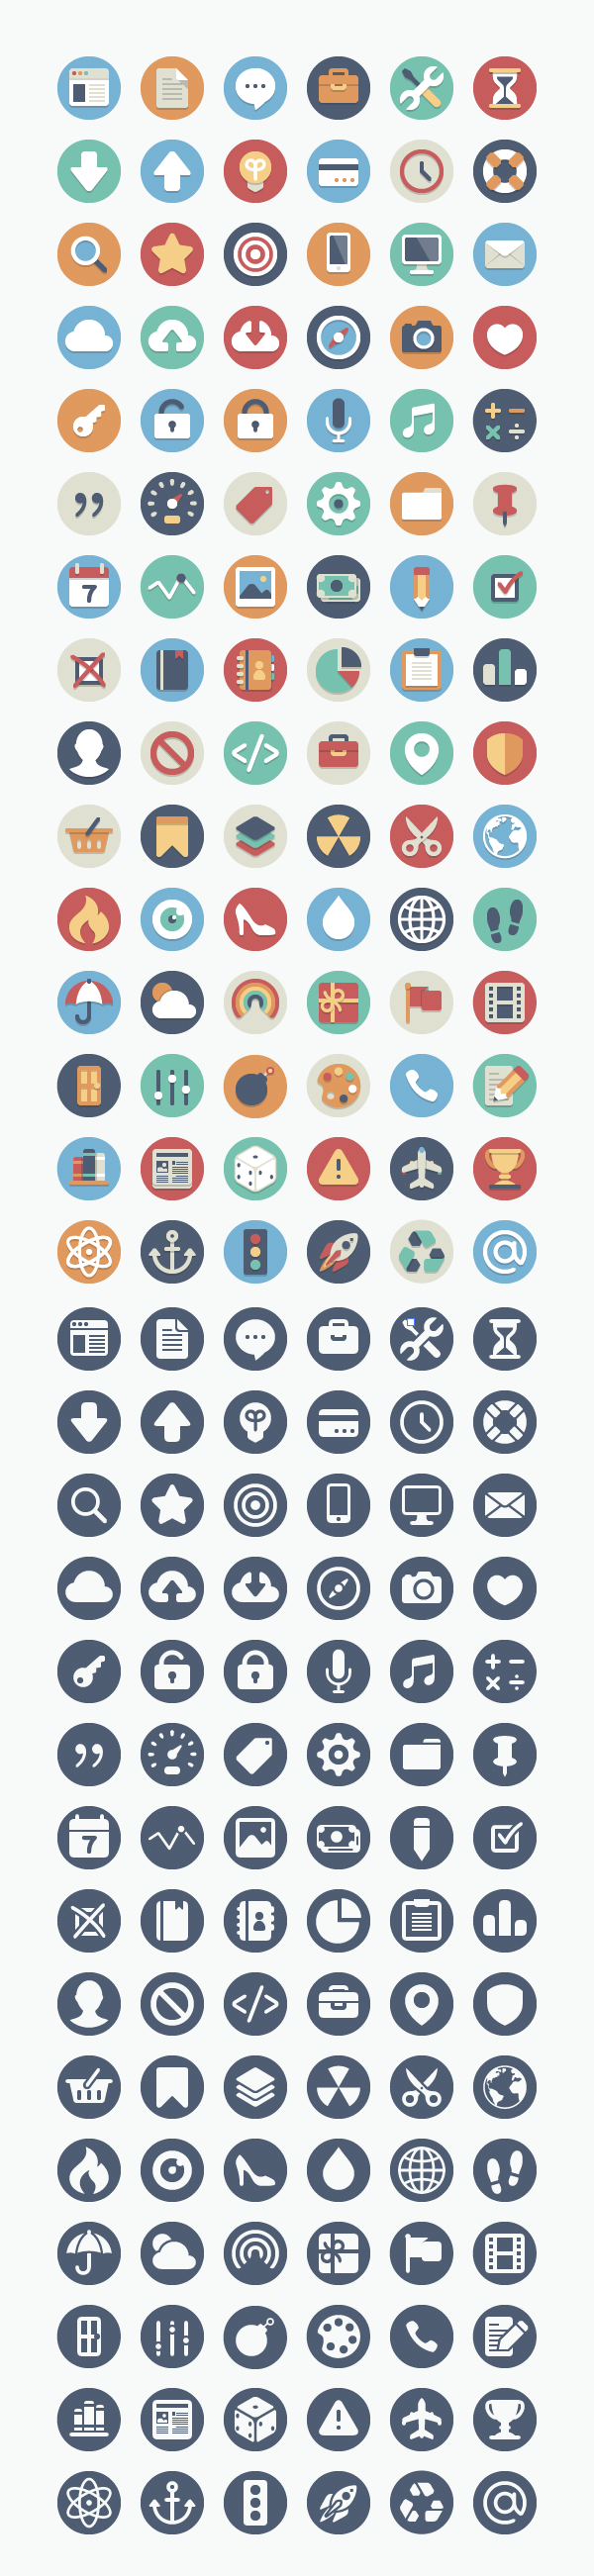 384 Free Flat Icons Download